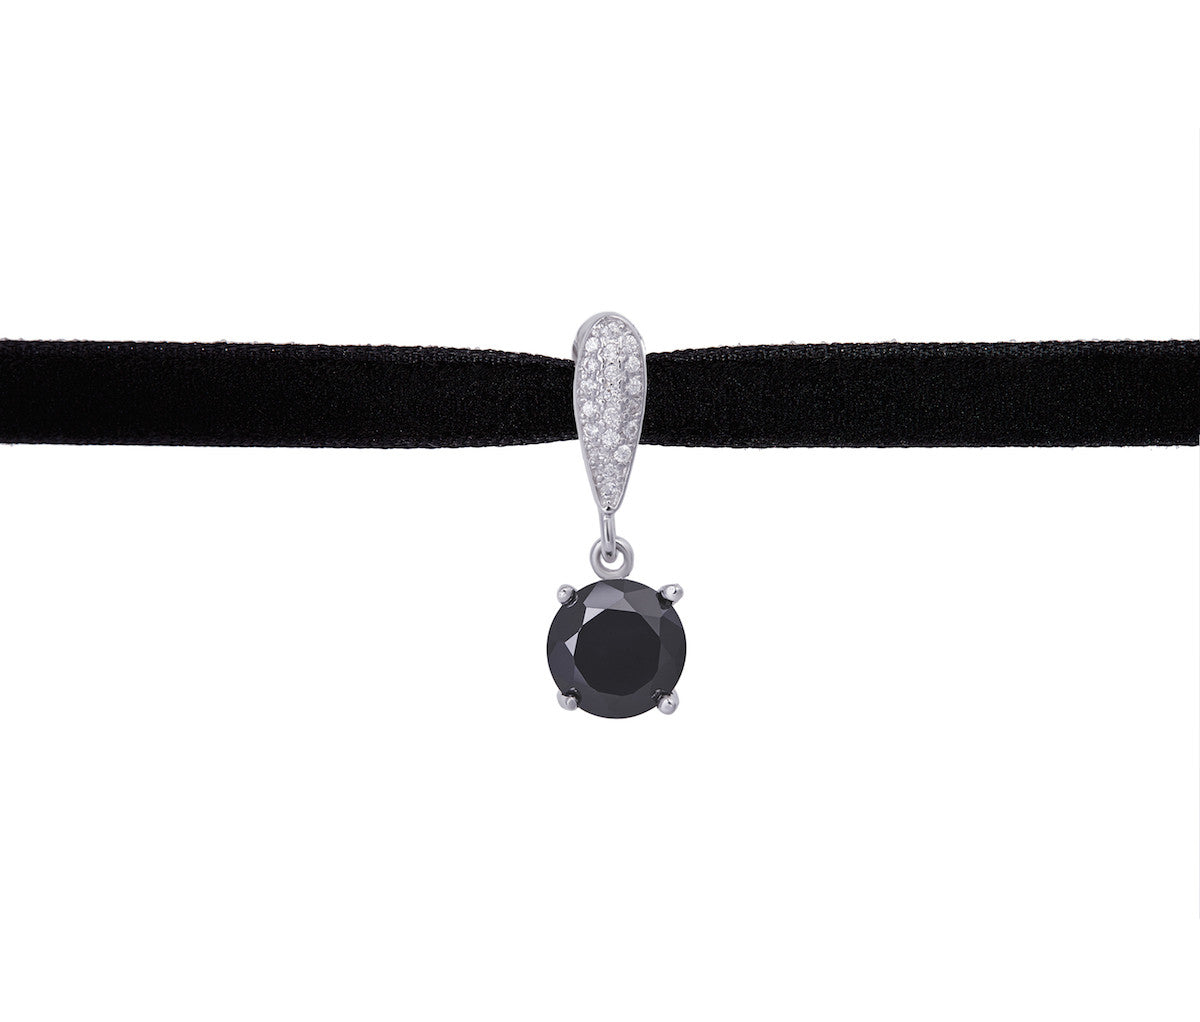 Velvet Necklace with Silver Black Diamond-shaped Pendant